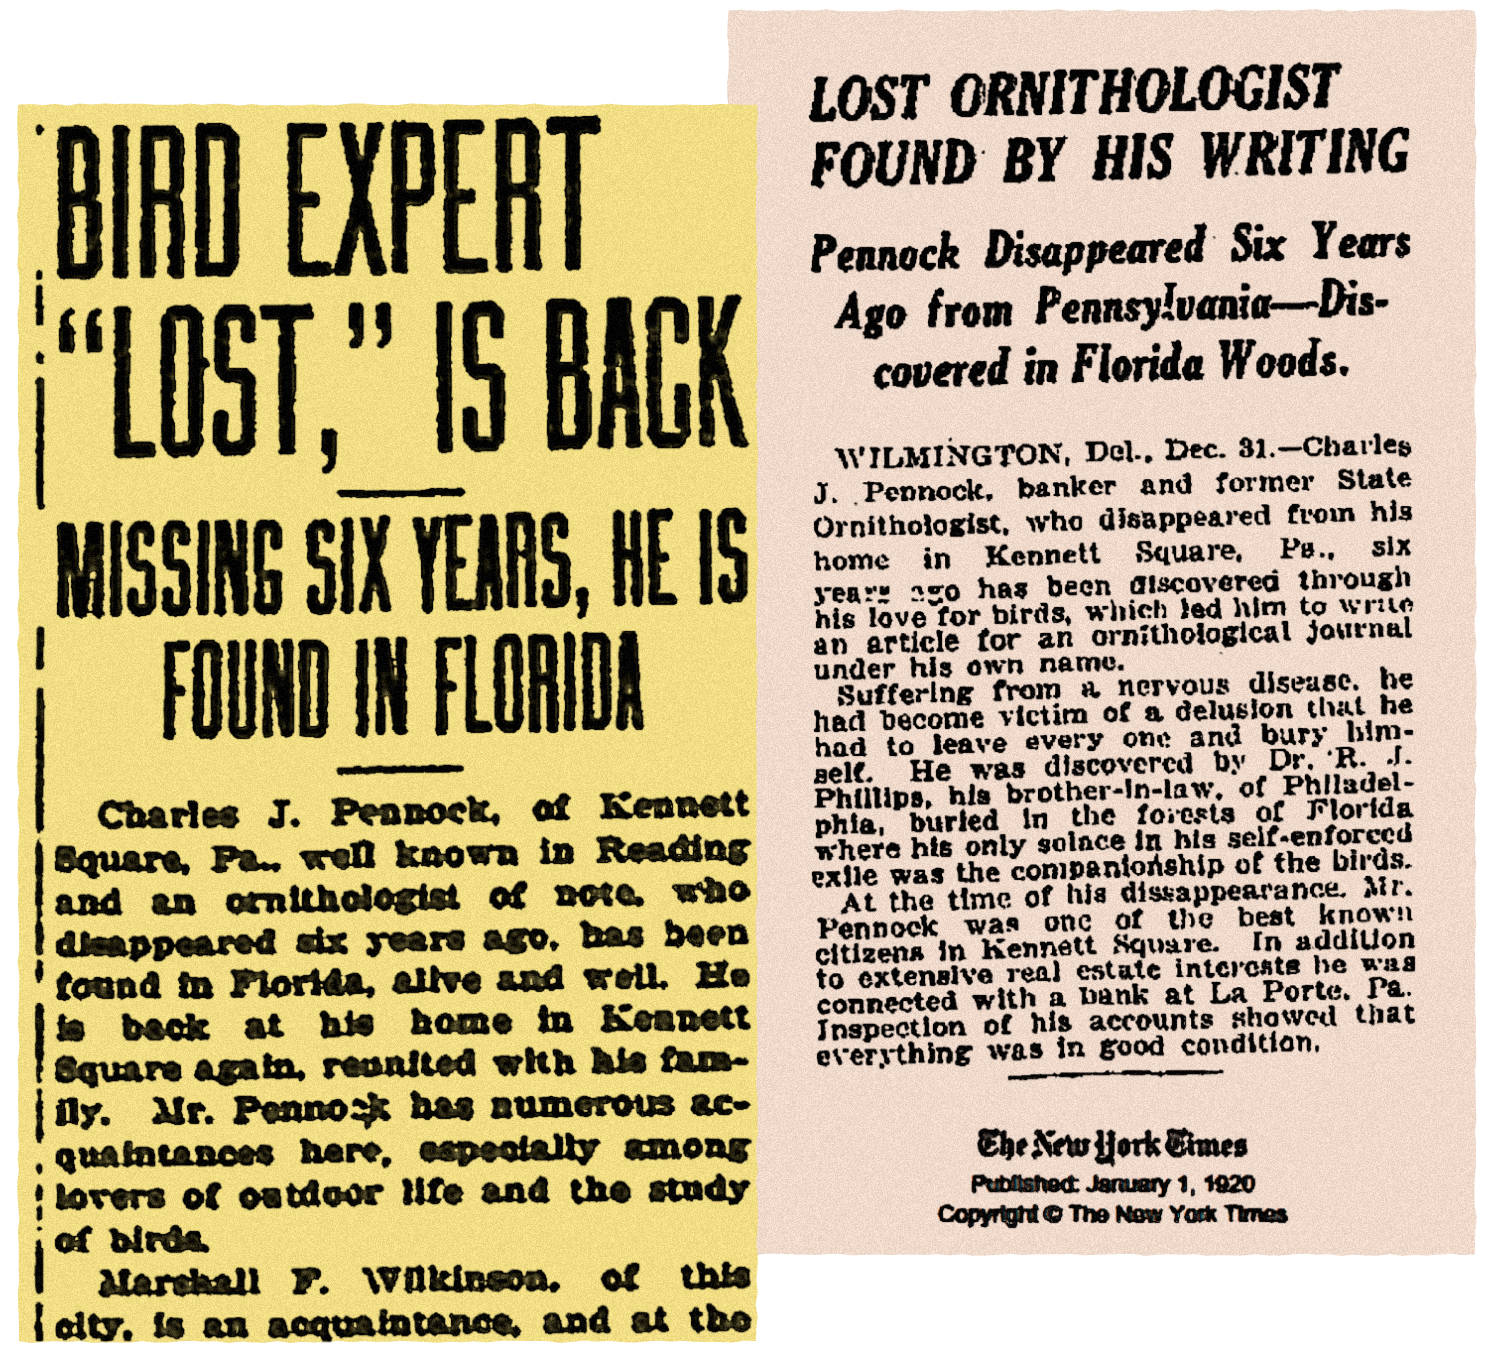 """Newspaper clippings with headliens """"Bird Expert 'Lost,' is Back"""" and """"Lost Ornithologist Found by his Writing"""""""